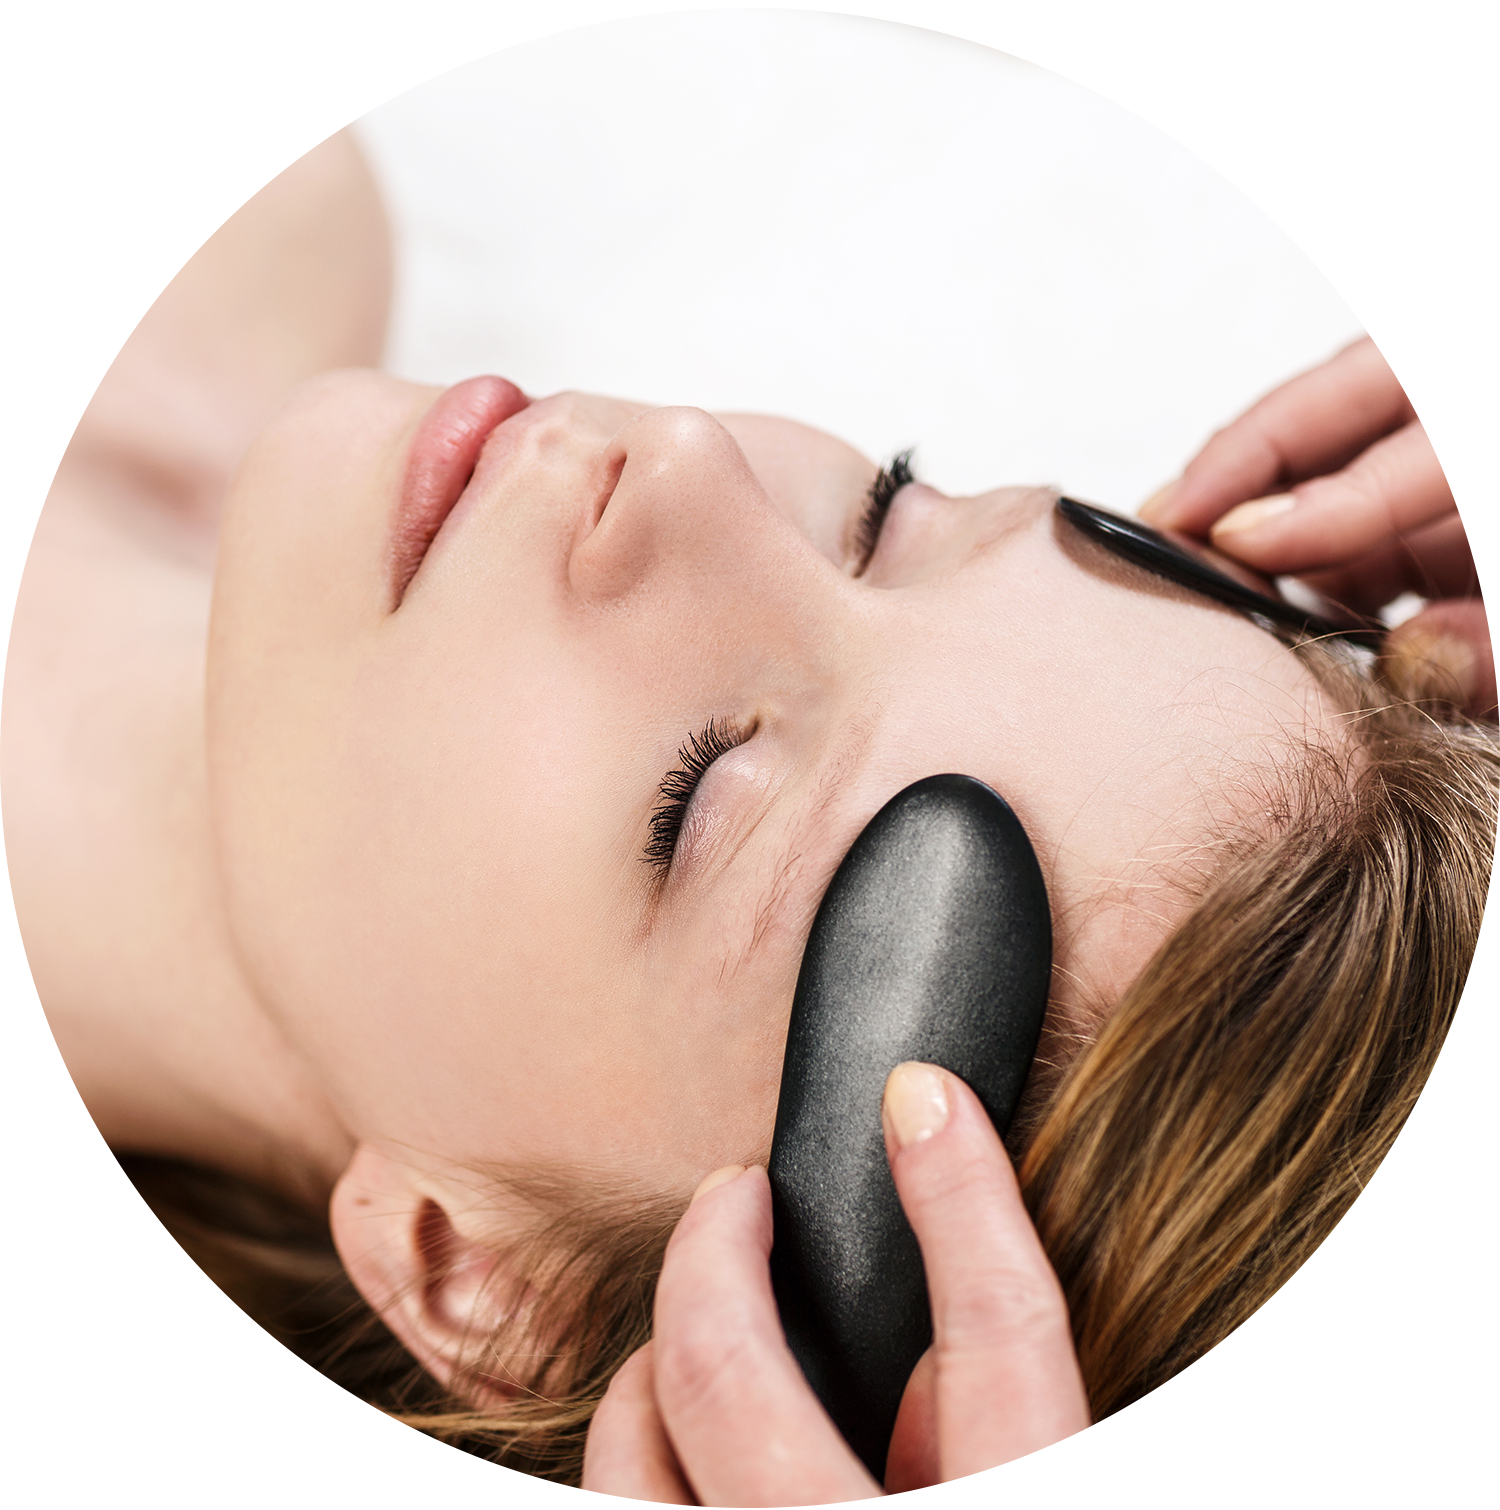 Hot Stone Facial -£36 - Available at Nailsea beauty room only on TuesdaysPure relaxation. Feel the warm, indulgent oils penetrate your skin - Nourishing and moisturising even the most dry, dehydrated complexion.